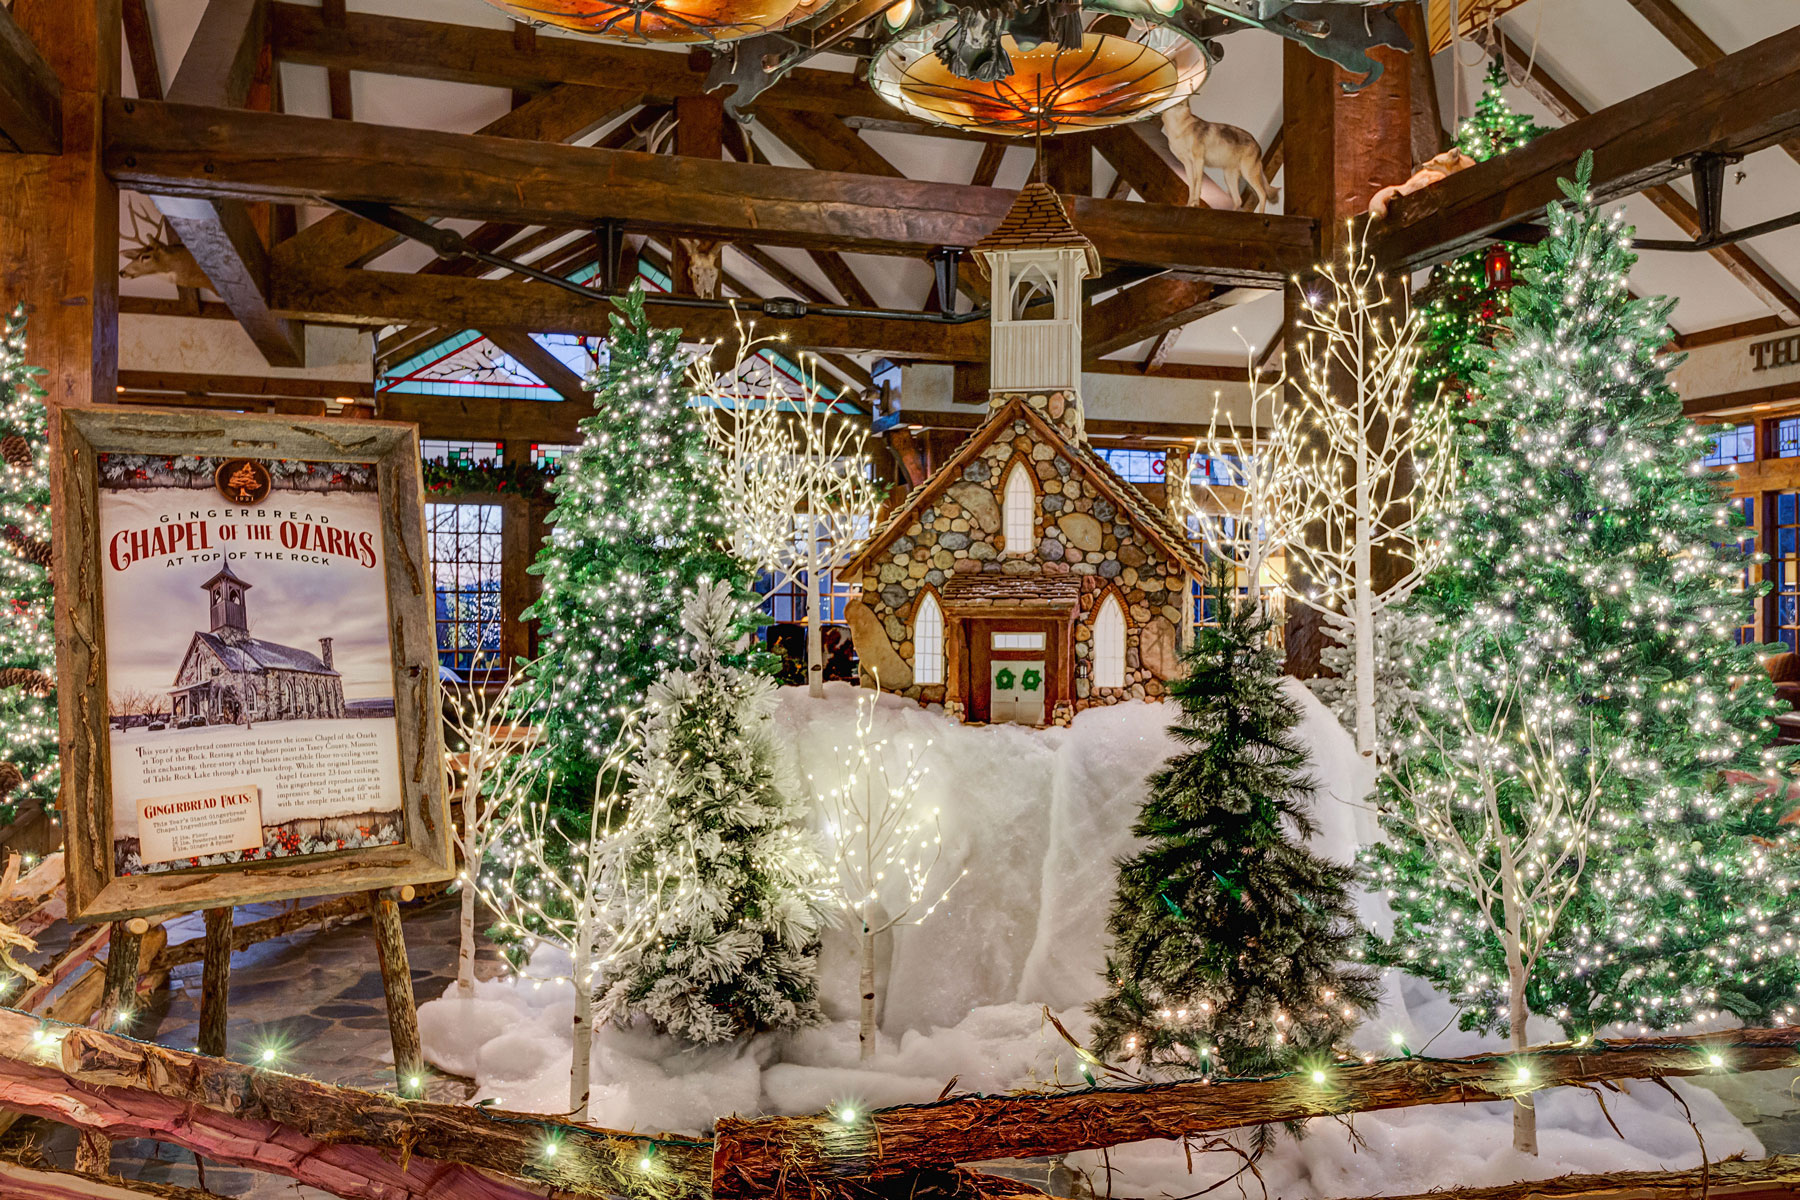 Big Cedar Lodge holiday decor